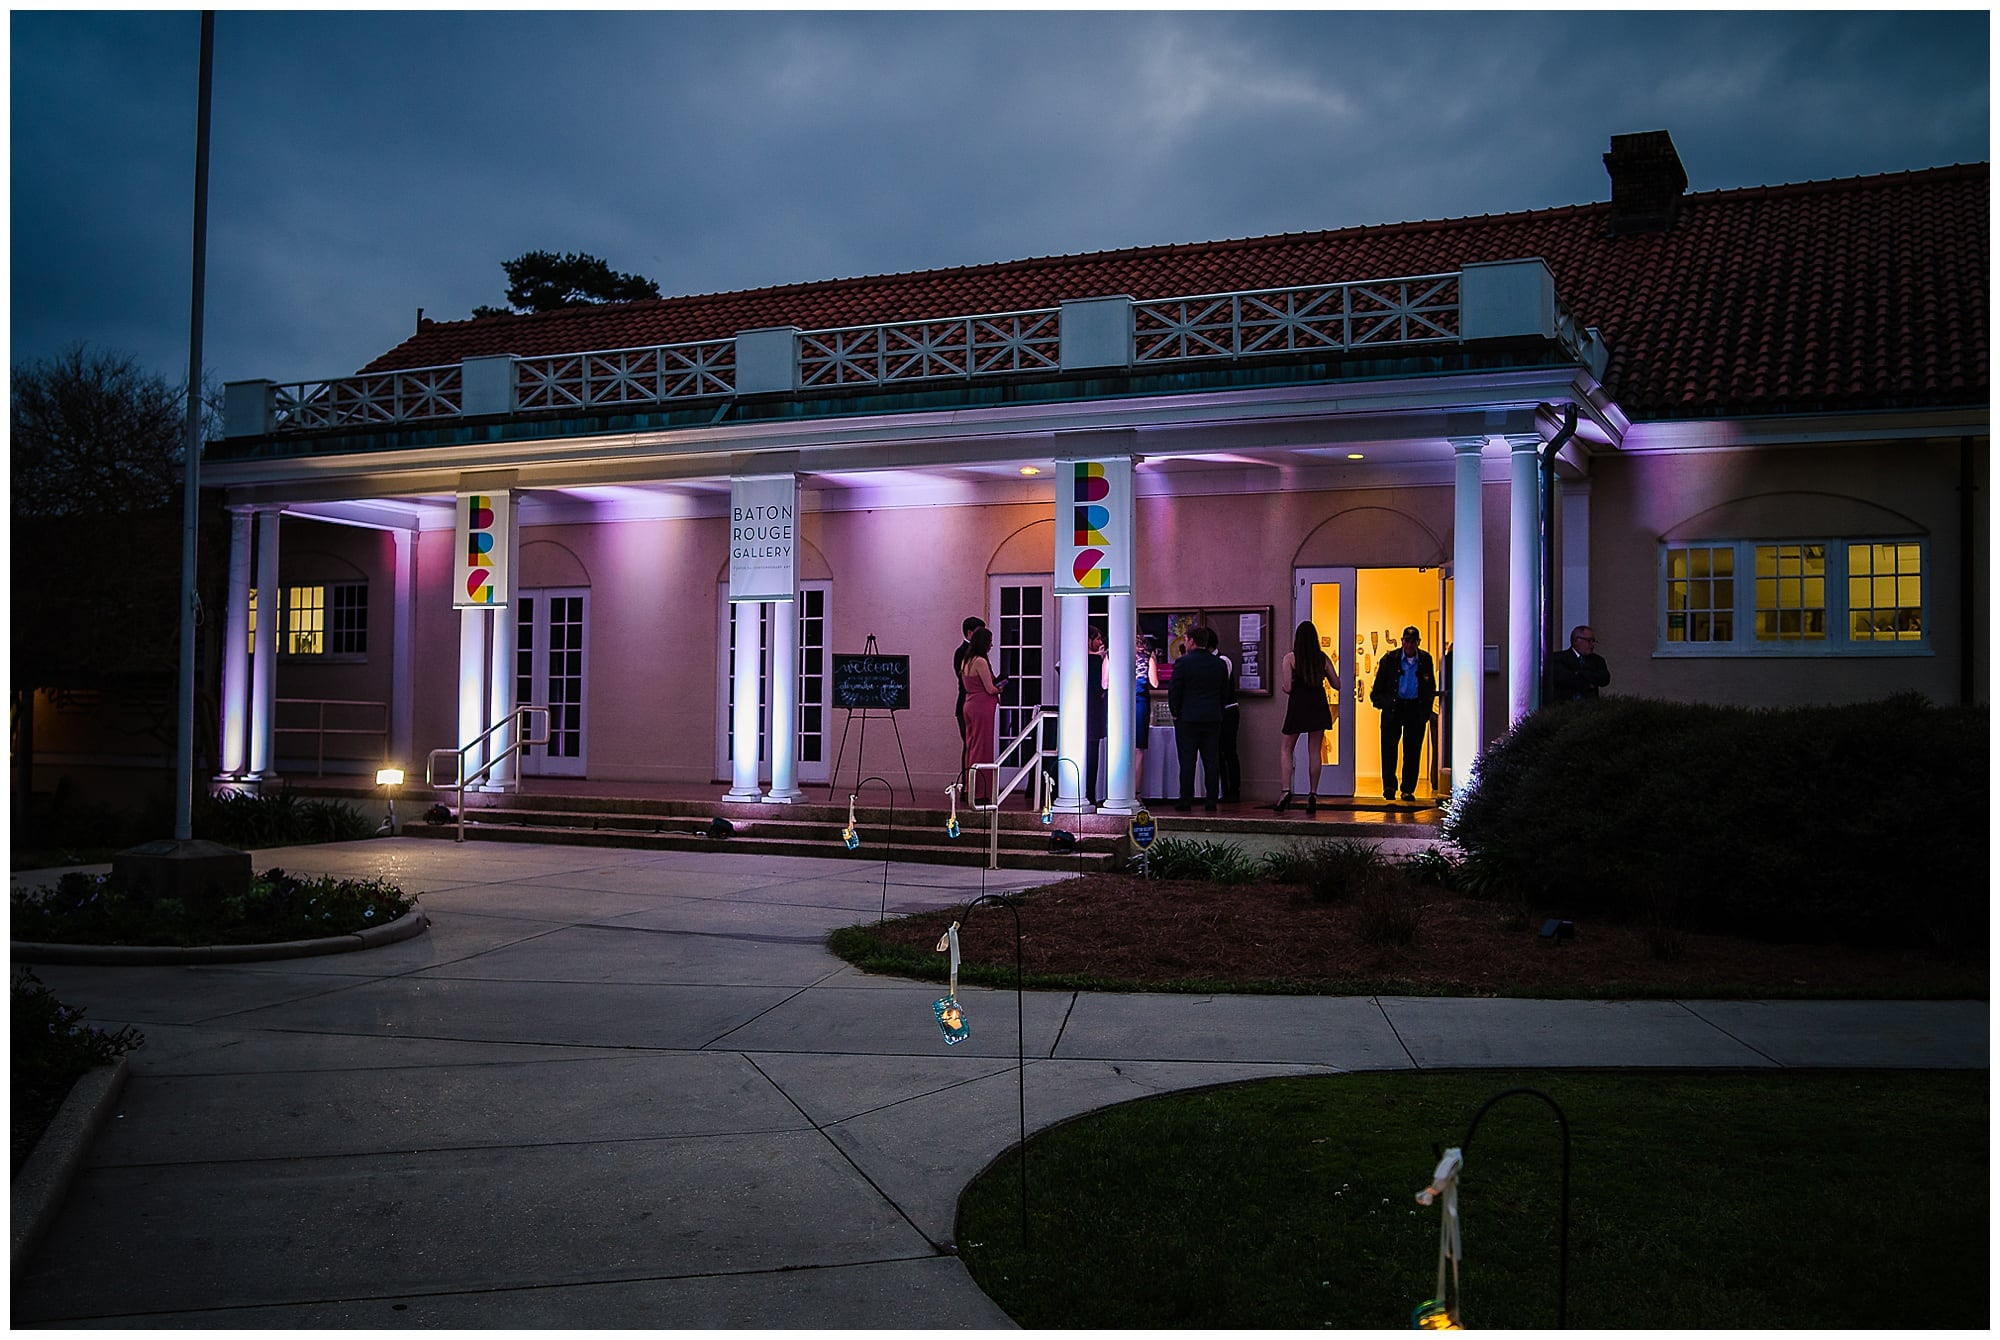 Baton Rouge Gallery Wedding Venue